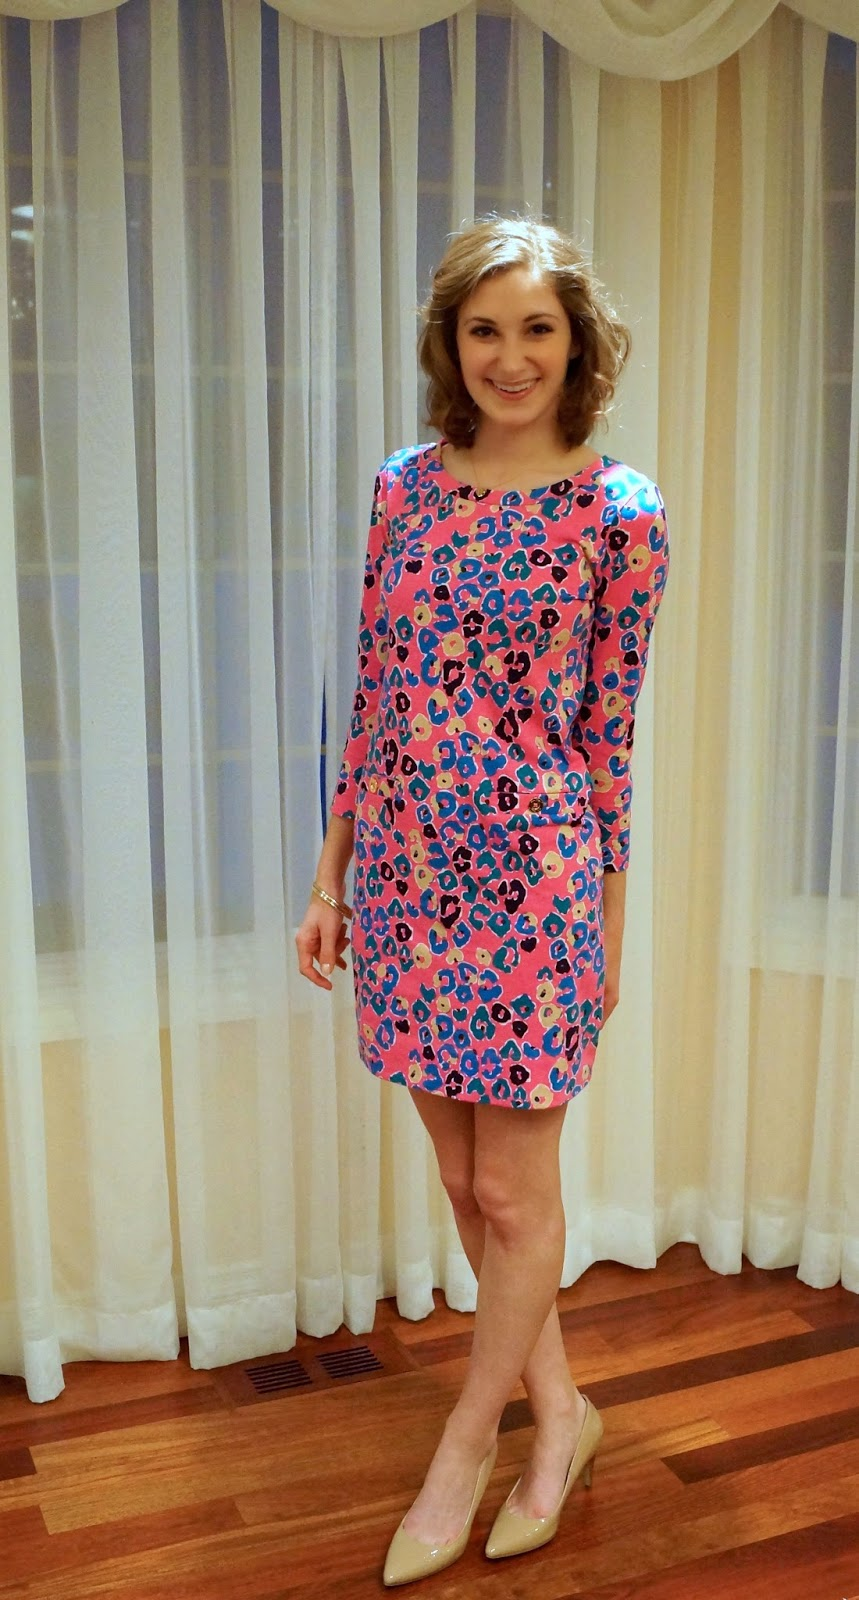 Lilly Pulitzer Dresses At Belk Lilly Pulitzer to Sadie s